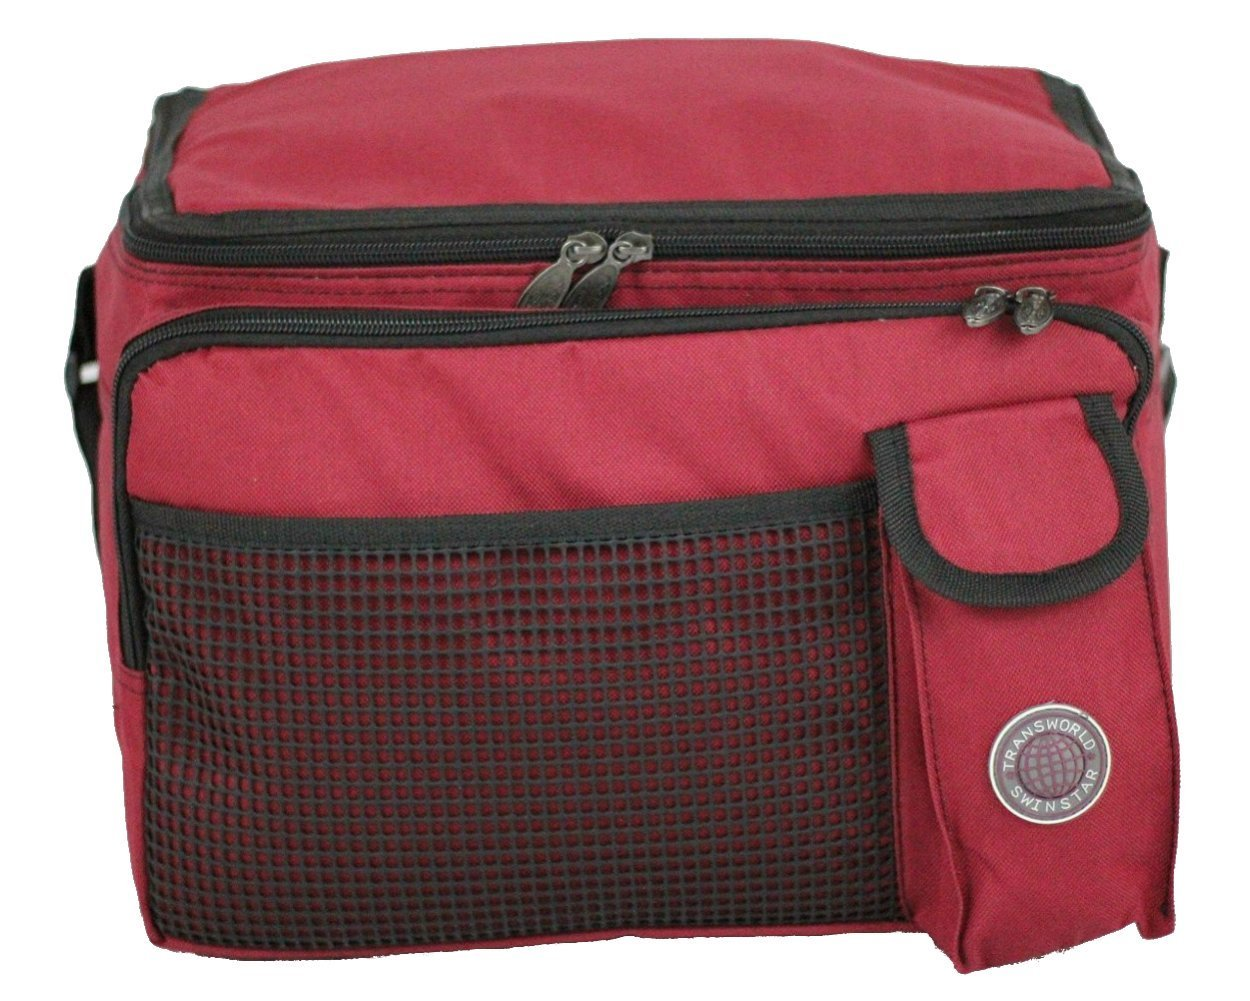 "Transworld Durable Deluxe Insulated Lunch Cooler Bag (Many Colors and Size Available) (13 1/2""x10""x10"", Red)"